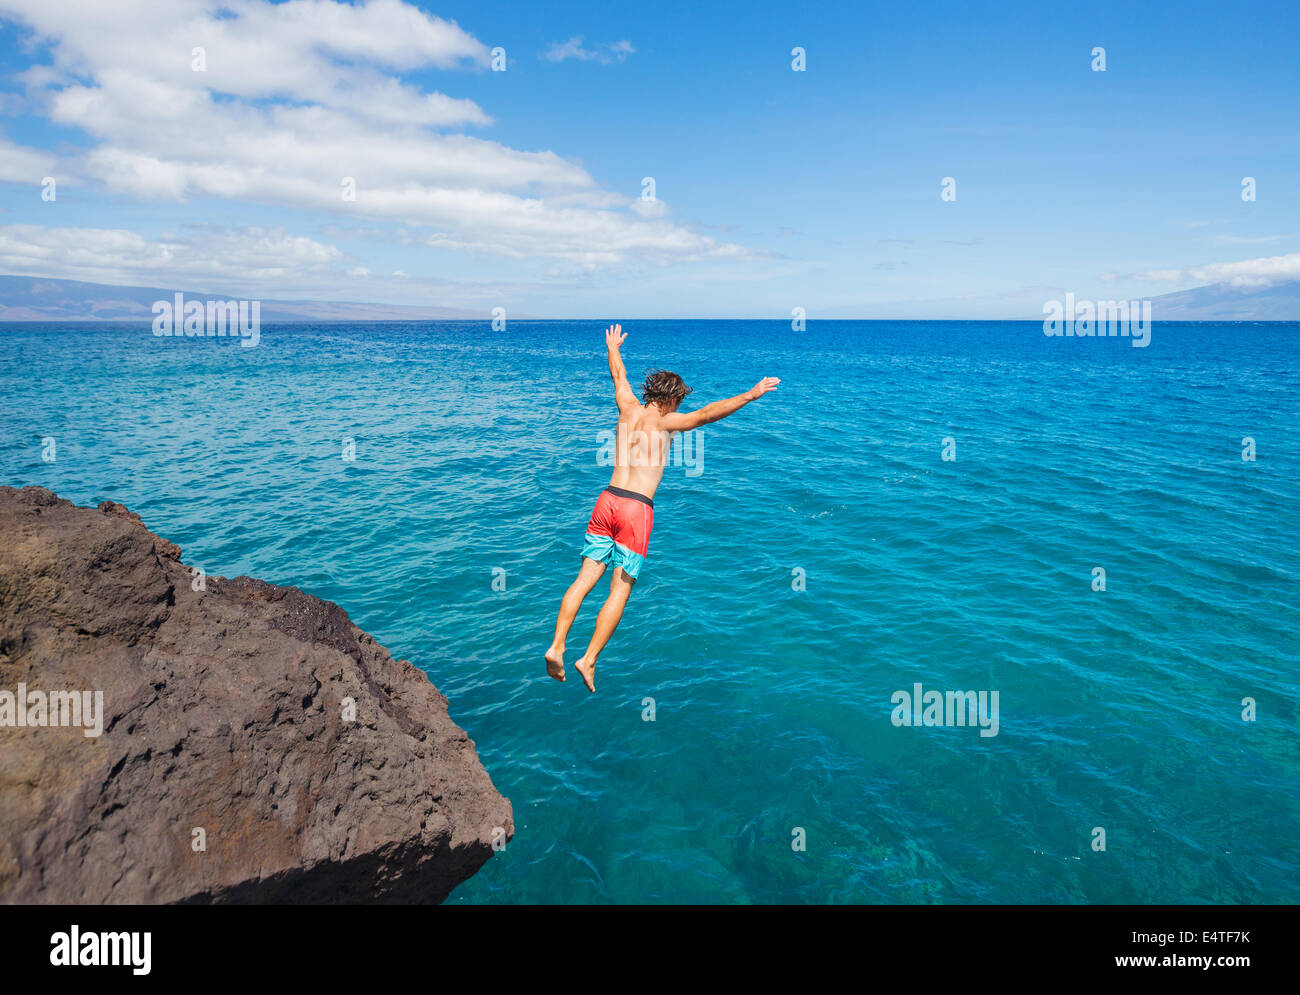 Man jumping off cliff into the ocean. Summer fun lifestyle. - Stock Image